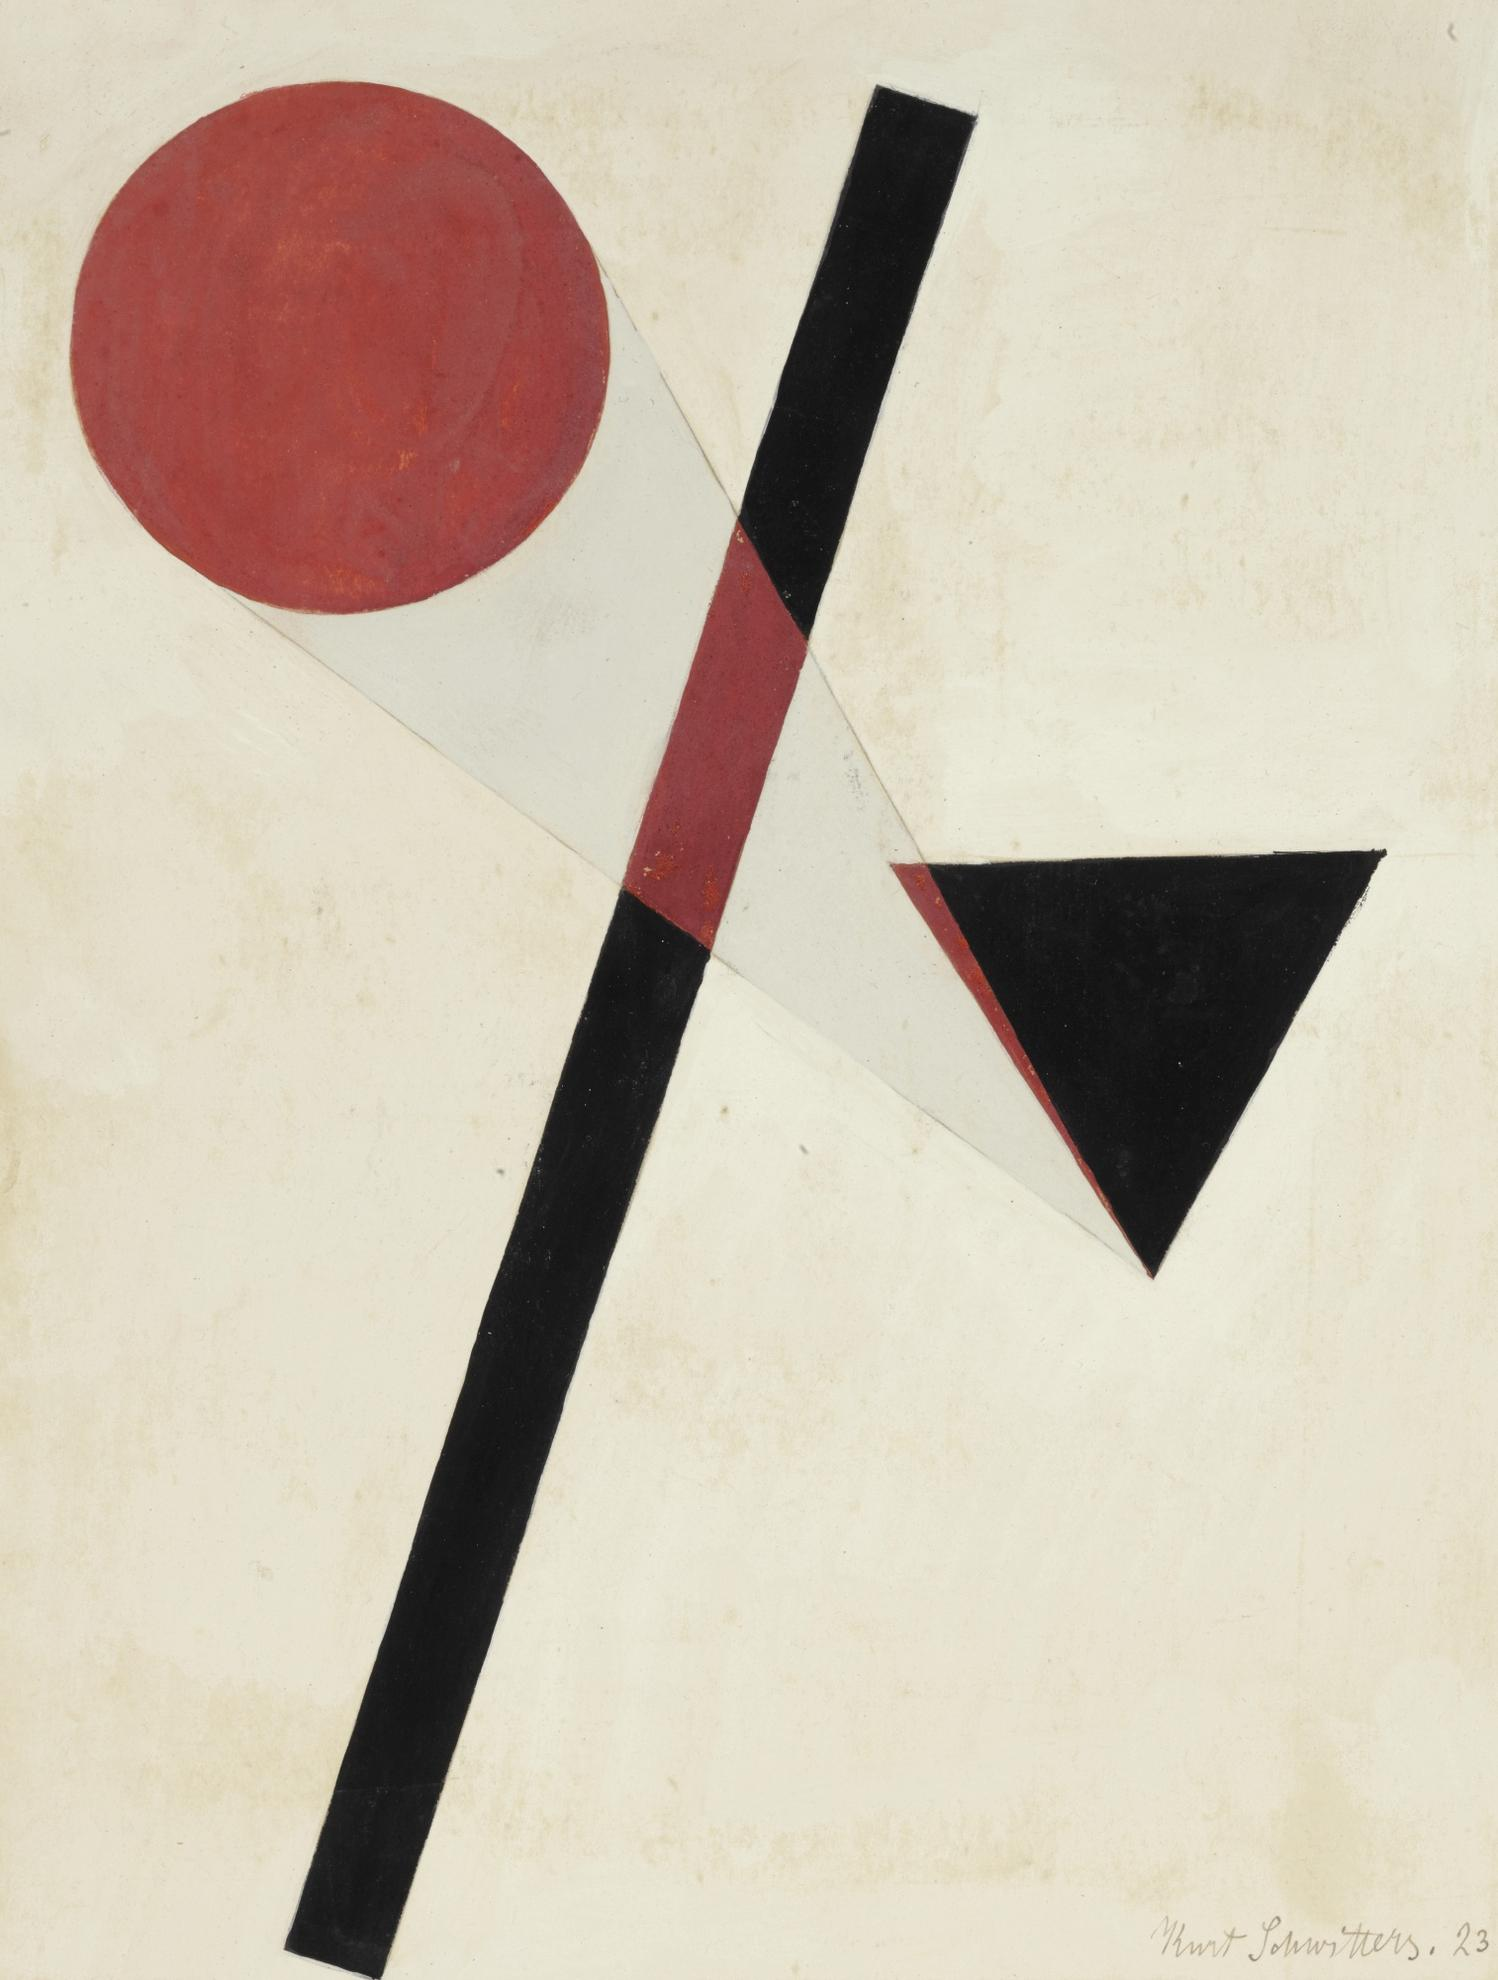 Kurt Schwitters-Ohne Titel (Konstruktion Mit Rotem Kreis Und Schwarzem Dreieck) (Untitled (Construction With Red Circle And Black Triangle))-1923